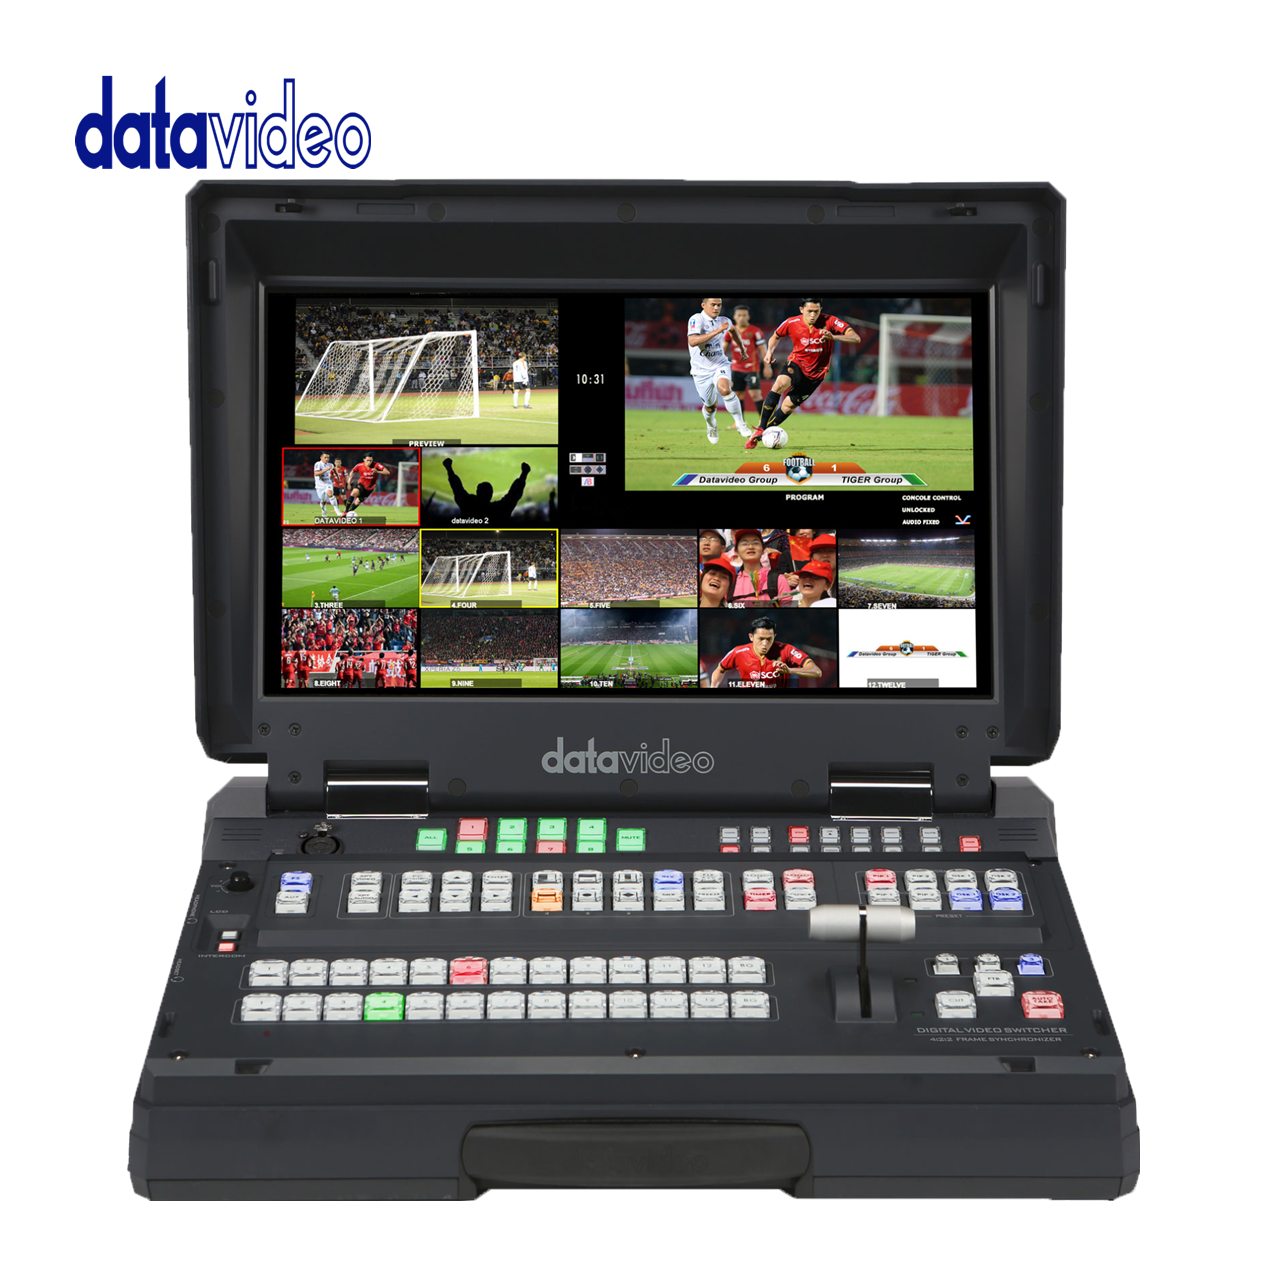 Datavideo HS-2850 HD/SD 12-Channel Portable Video Studio Pro Video Data Video